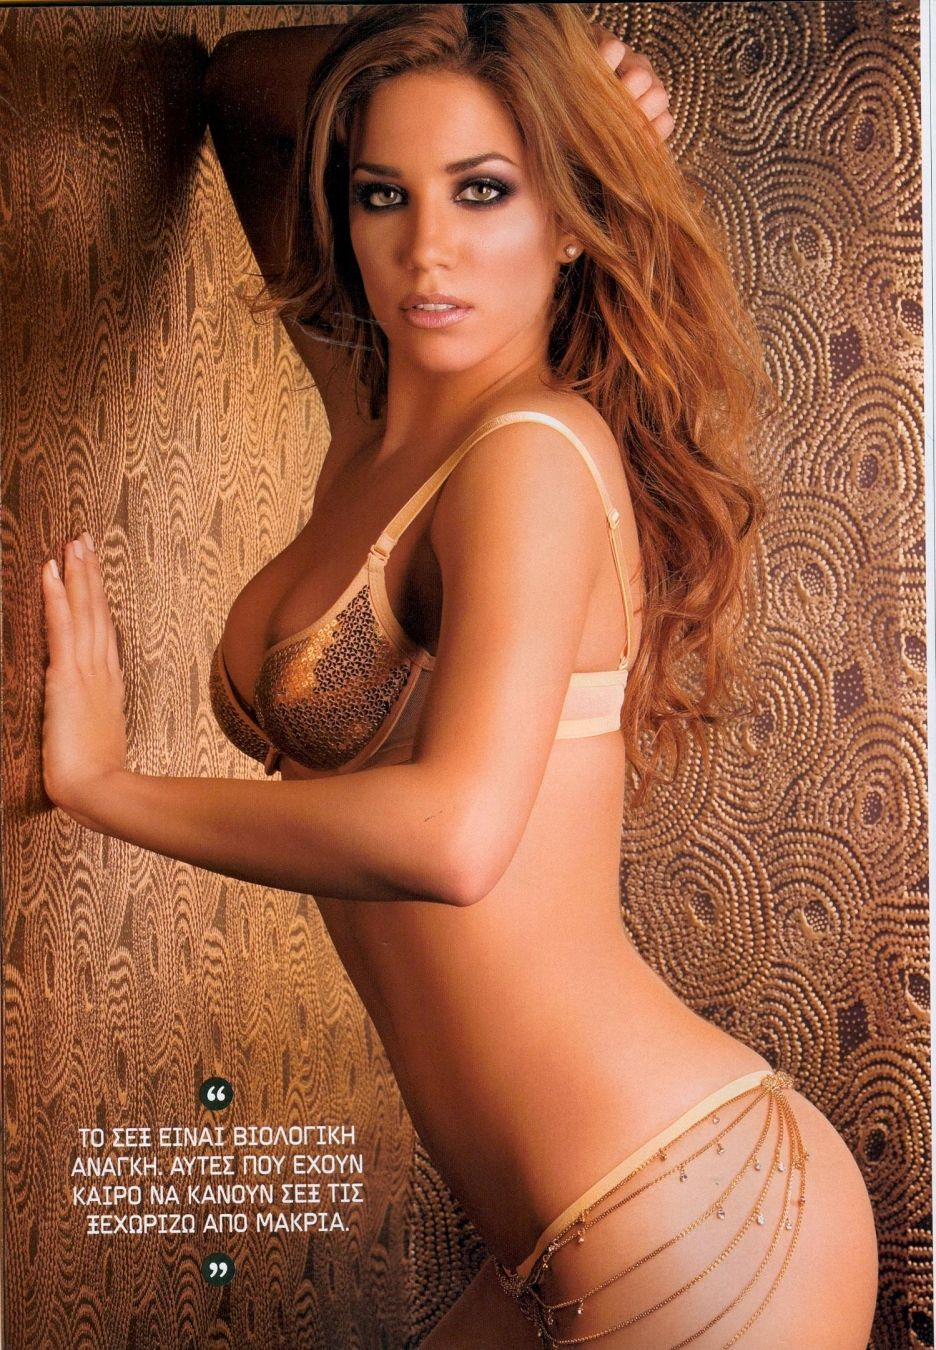 Greek Women On-Line is the Greek celebrities and playmates resource. 718944cdd80